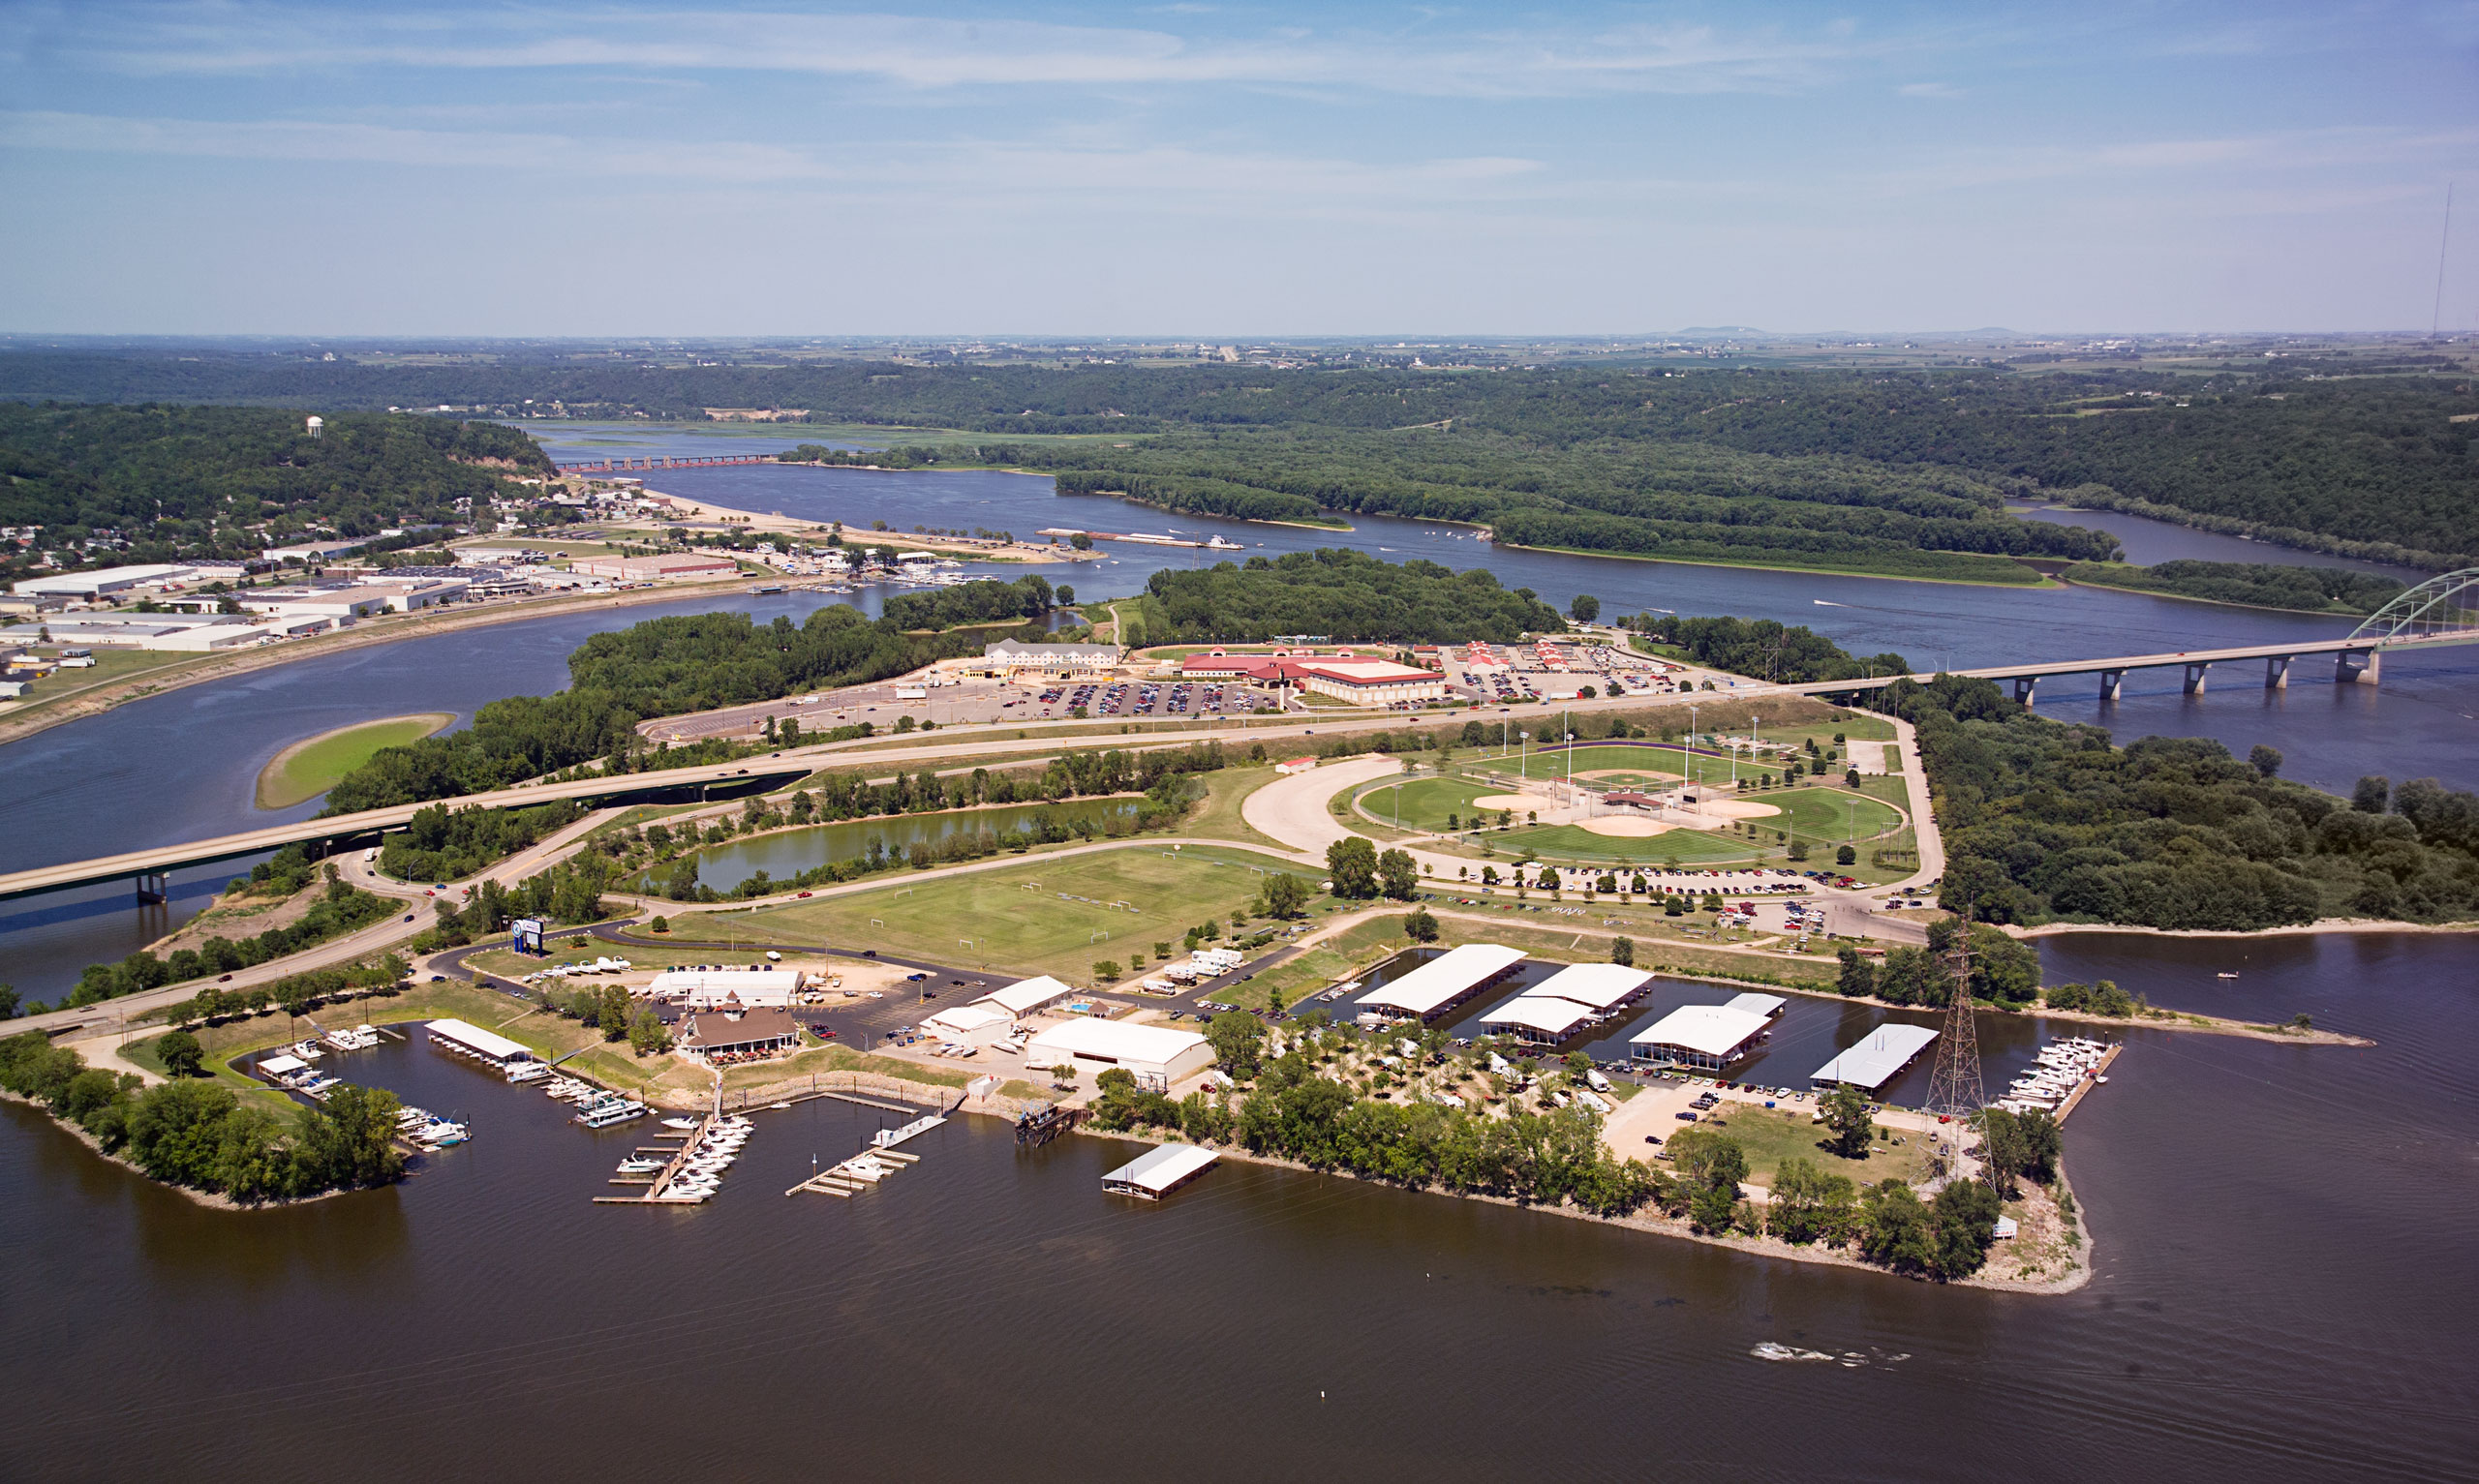 Aerial photograph of City Island & bridge into Wisconsin, Dubuque, Iowa